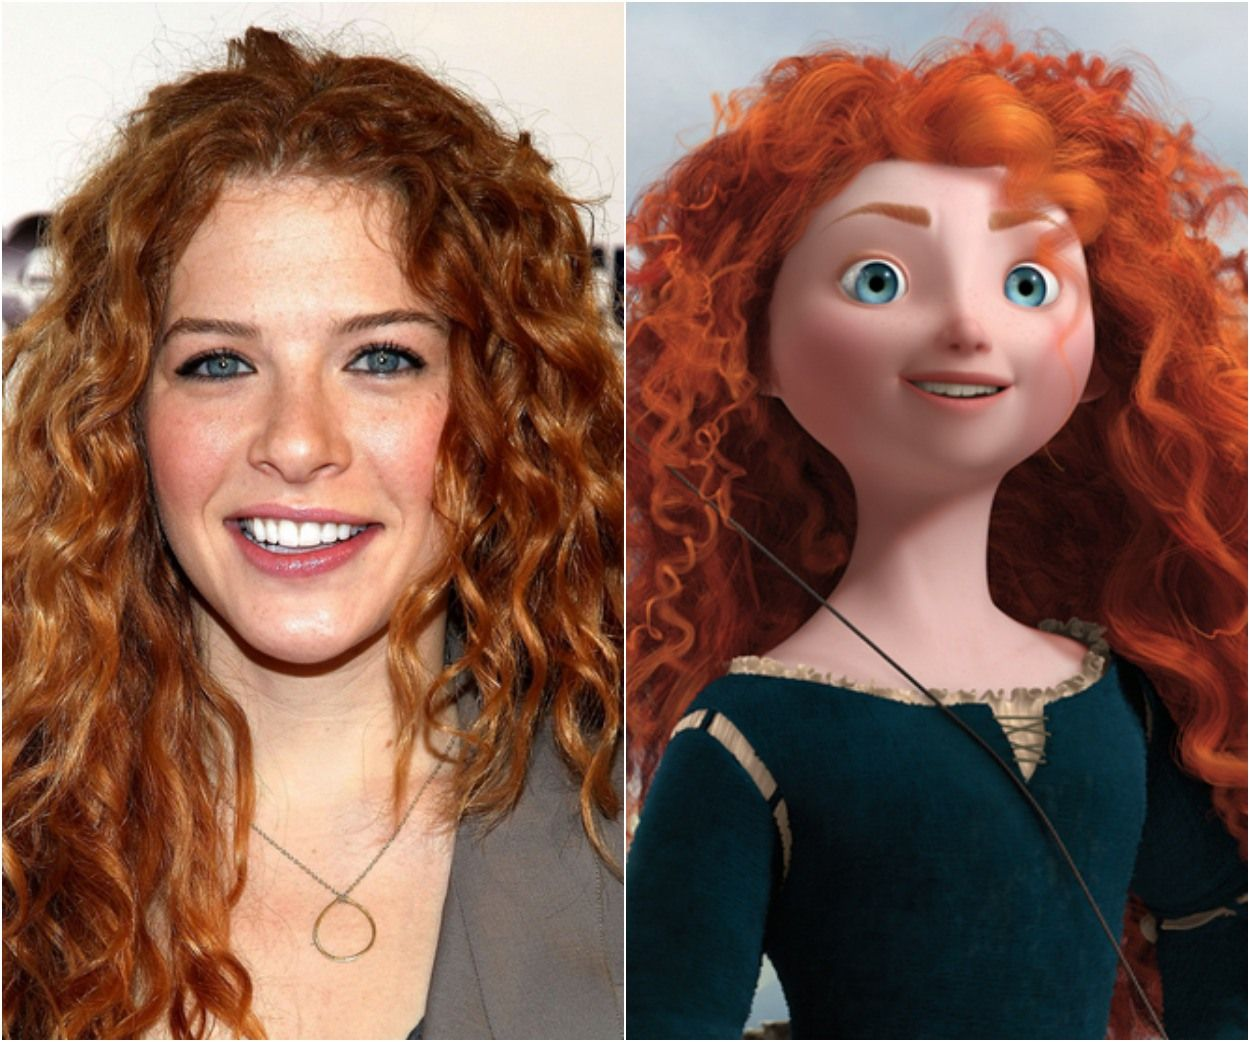 10 Celebs And Their Disney Princess Counterparts Celebsanswers - 10-celebrities-without-makeup-answers